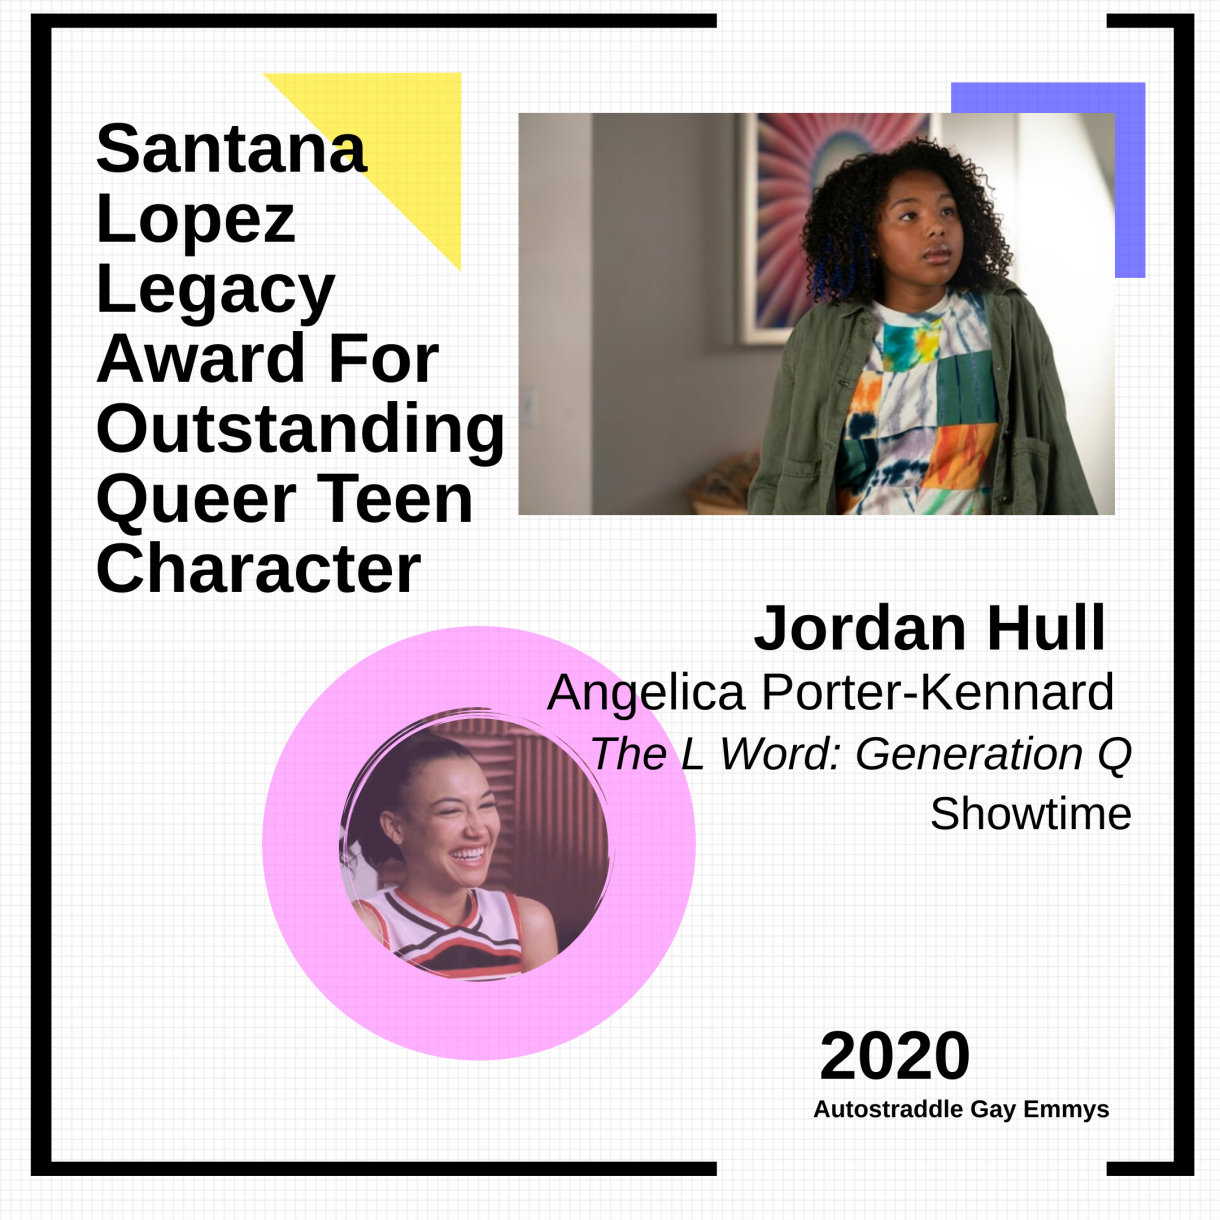 Colorful graphic for Santana Lopez Legacy Award For Outstanding Queer Teen Character: Jordan Hull as Angelica,The L Word: Generation Q(Showtime). Picture of Santana in a cheerleader uniform with a pink circle in one corner, picture of Jordan Hull as Angie in the other.